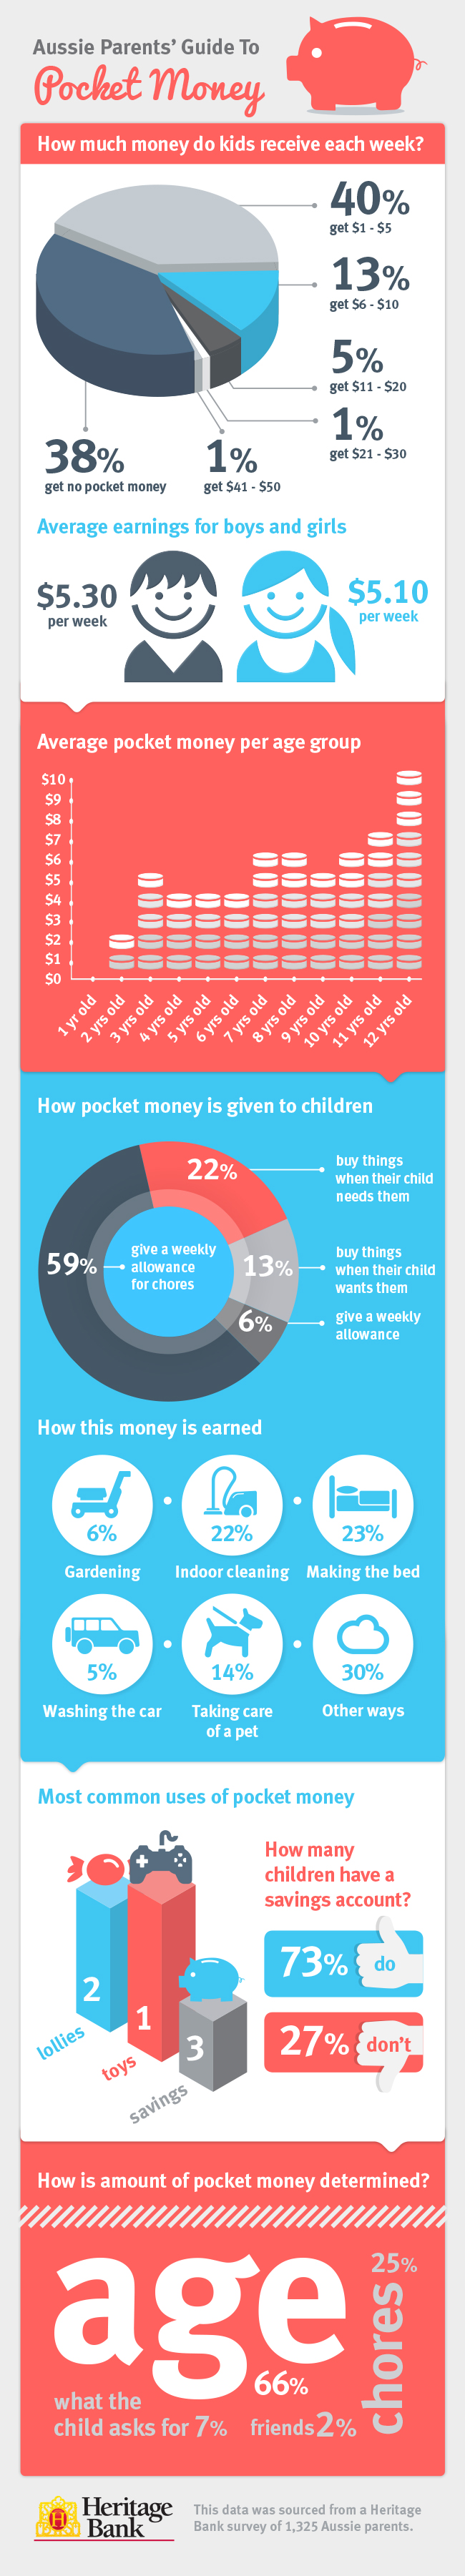 Aussie parents' guide to pocket money